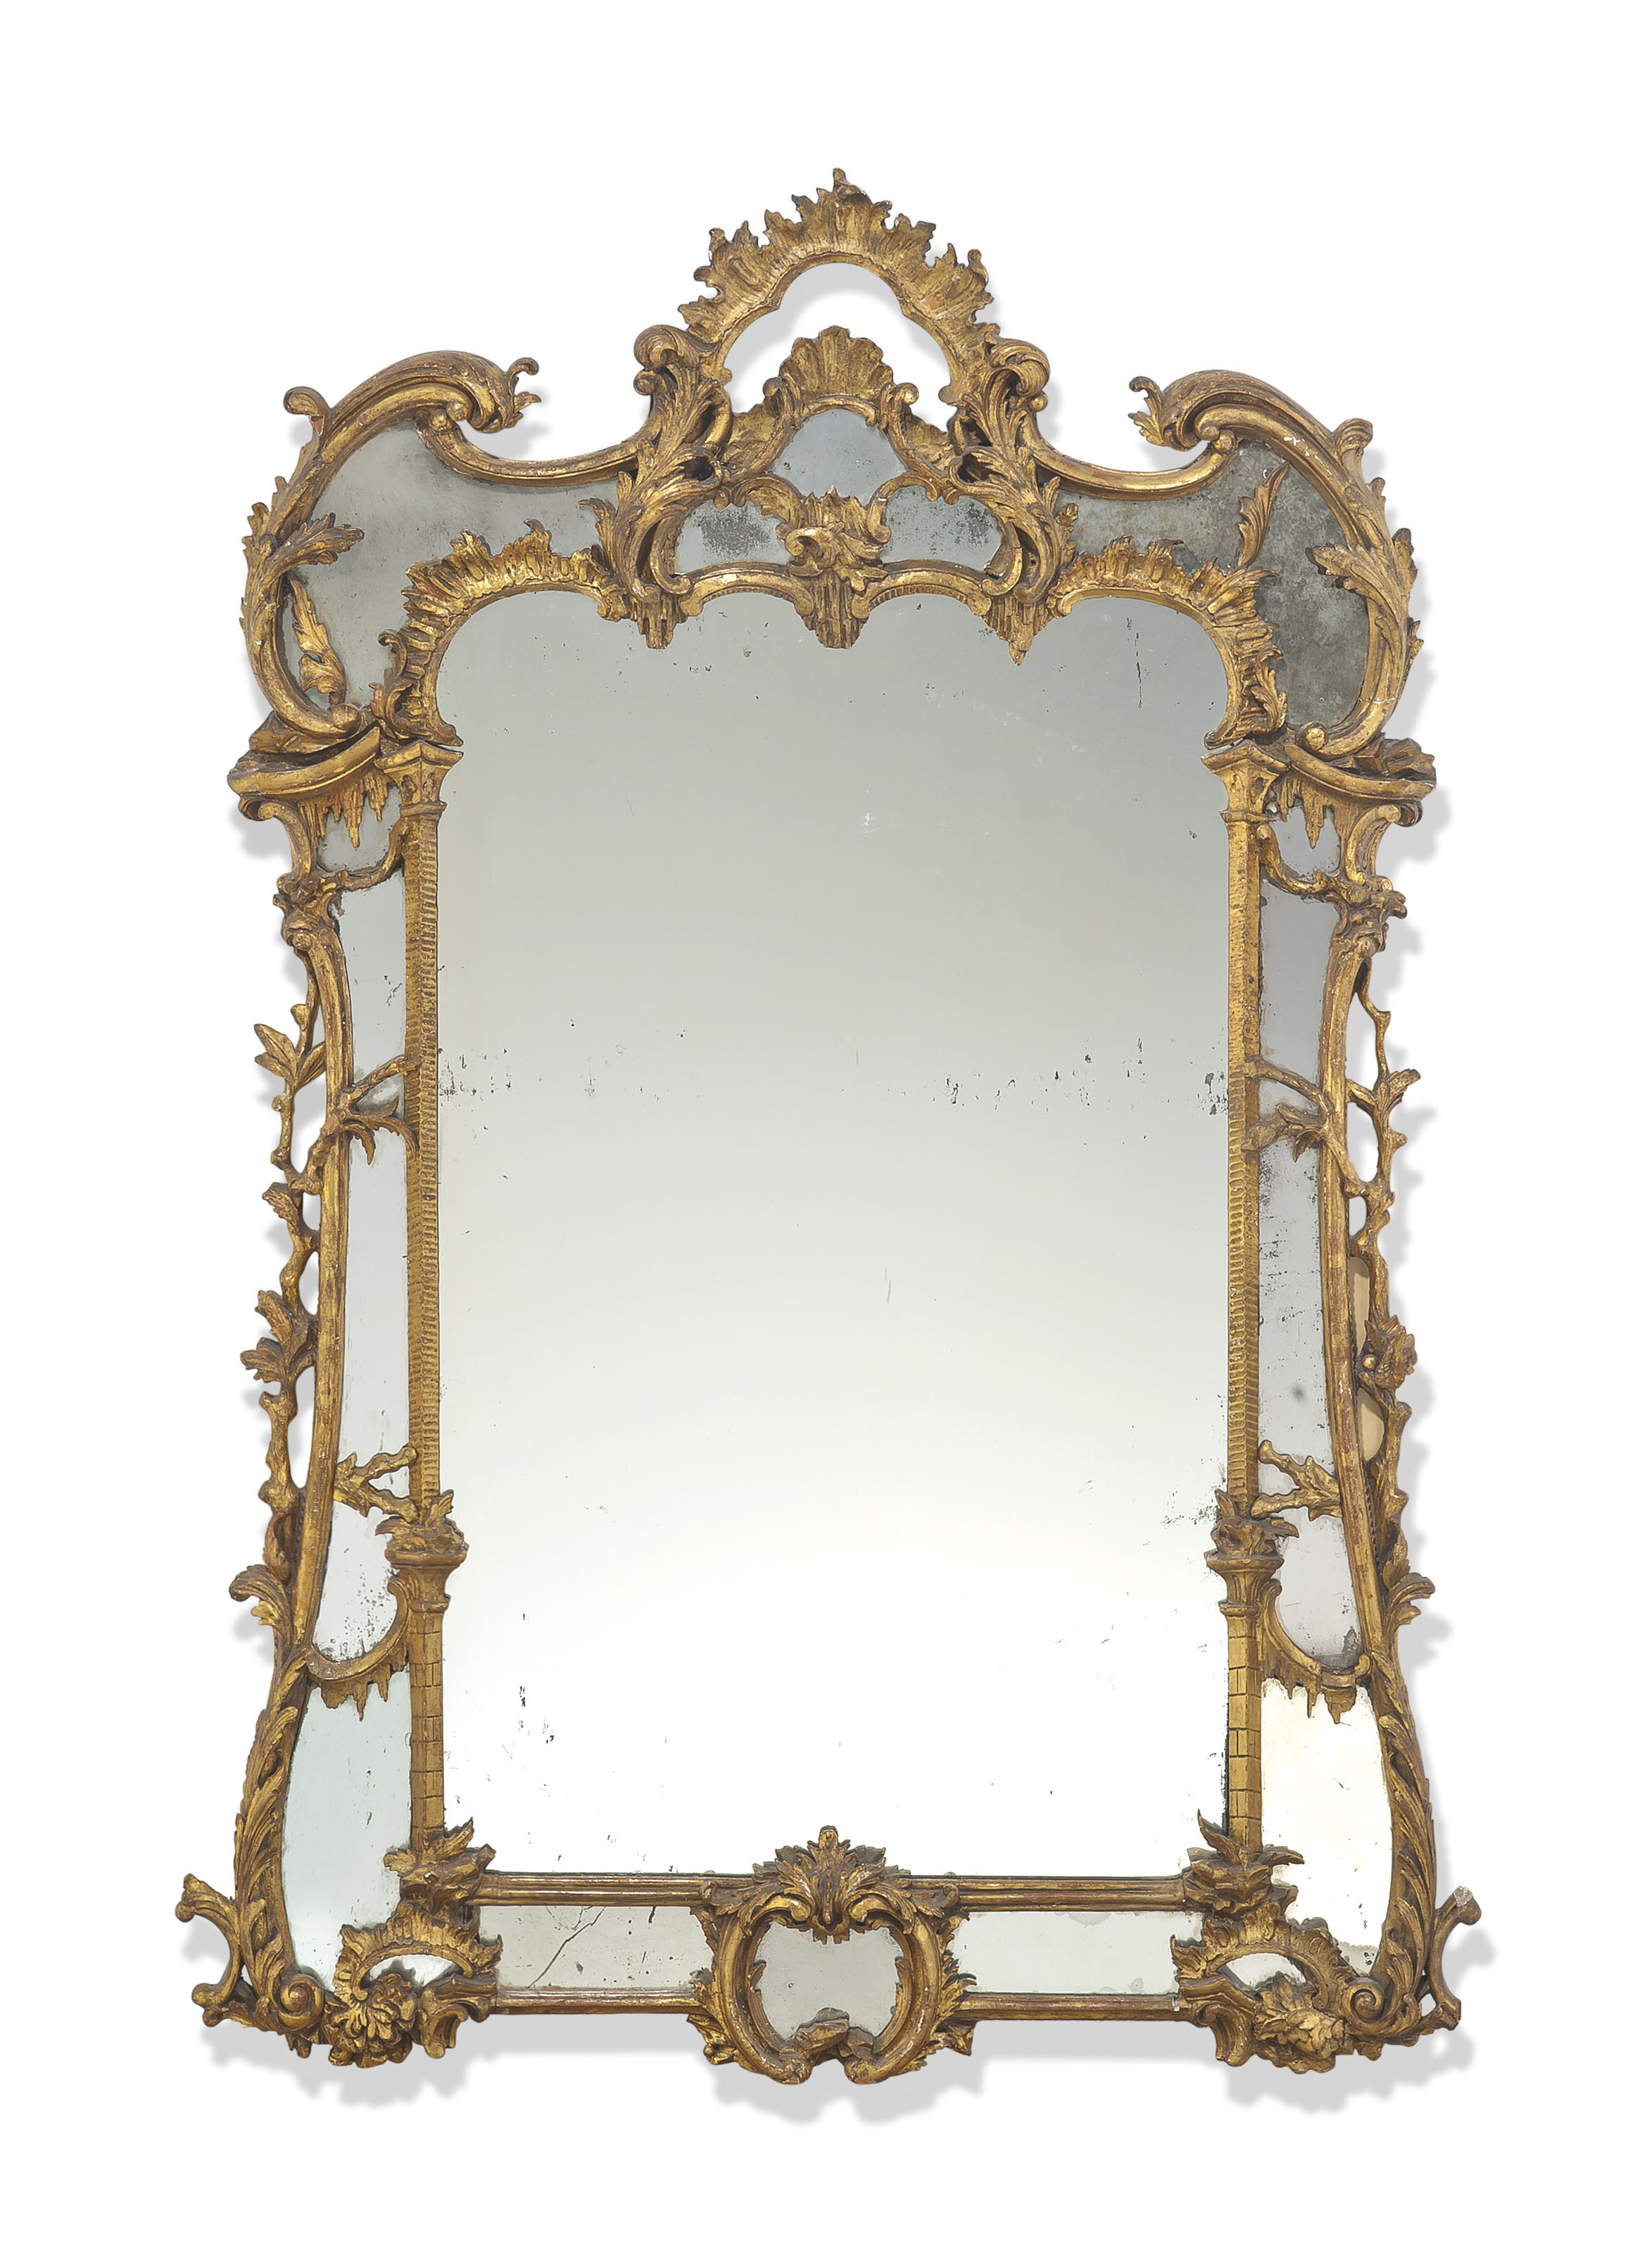 AN EARLY VICTORIAN GILTWOOD MIRROR